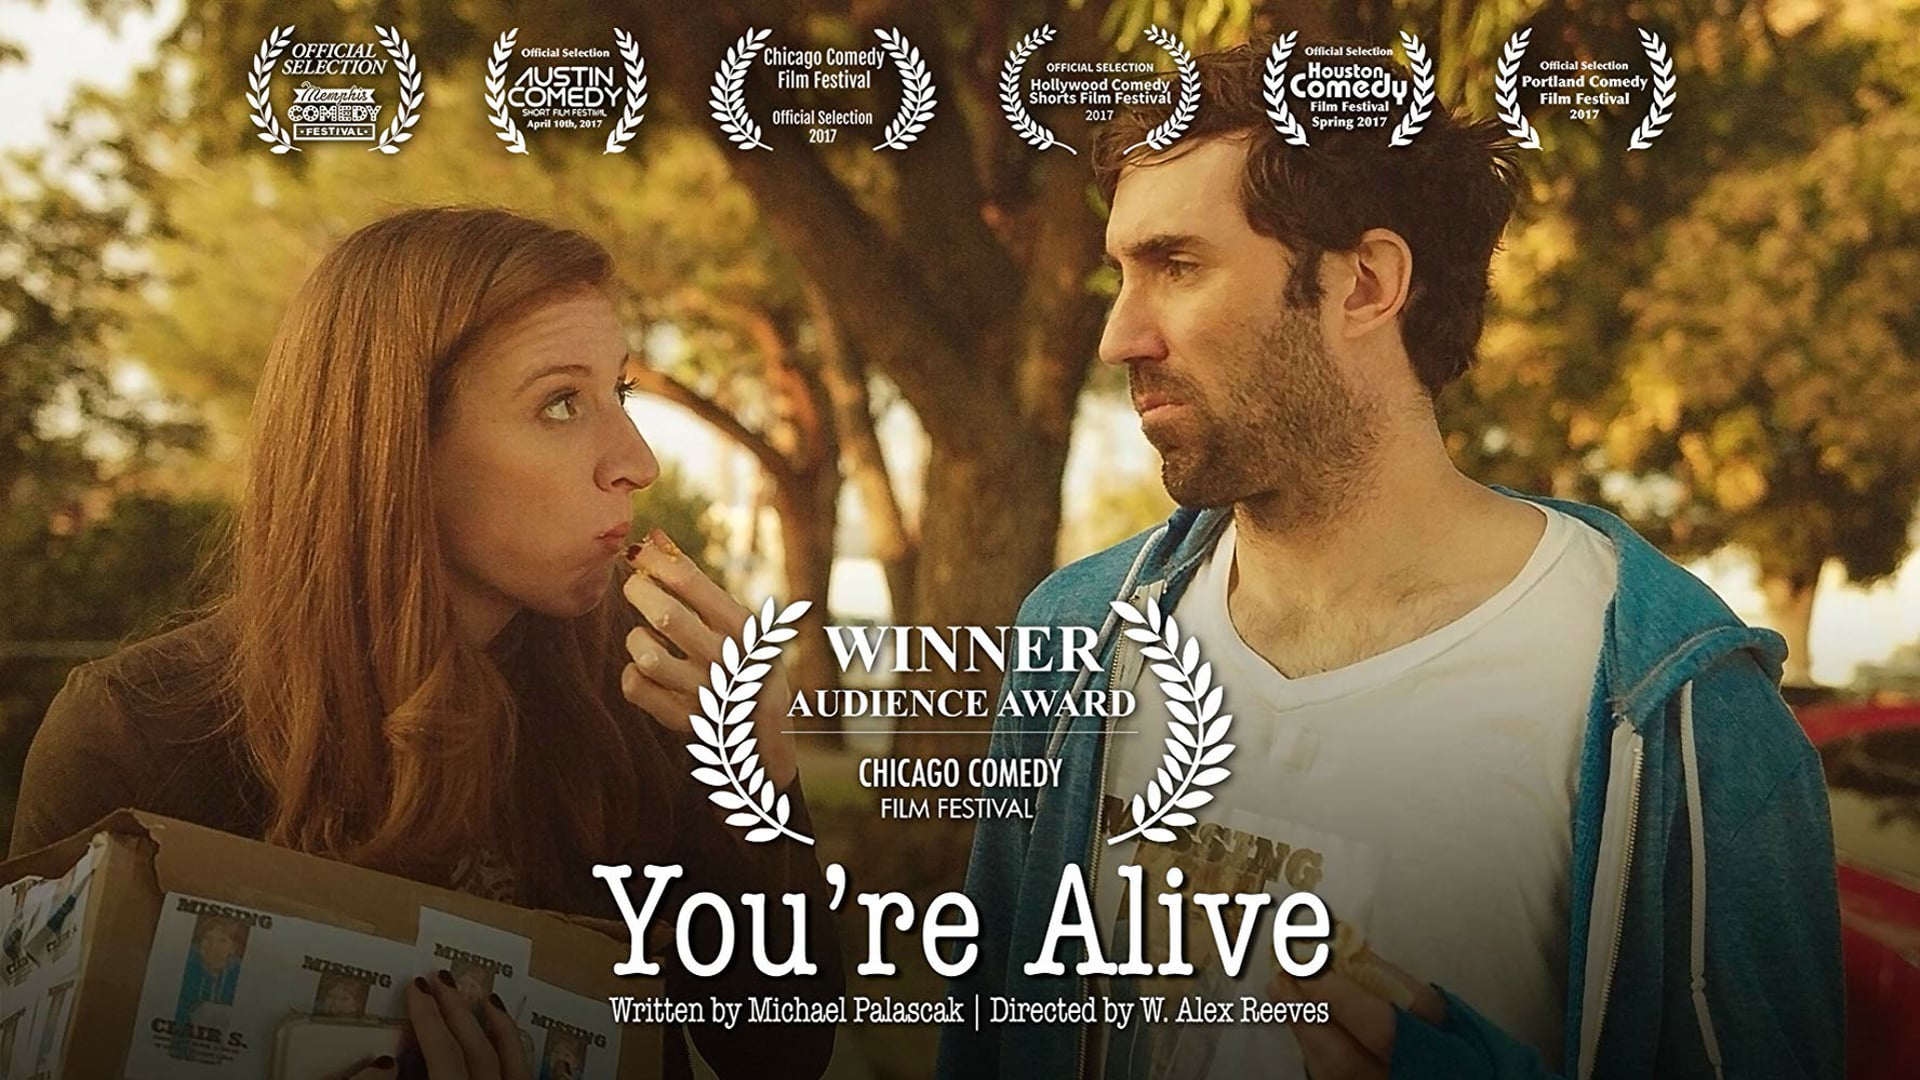 You're Alive